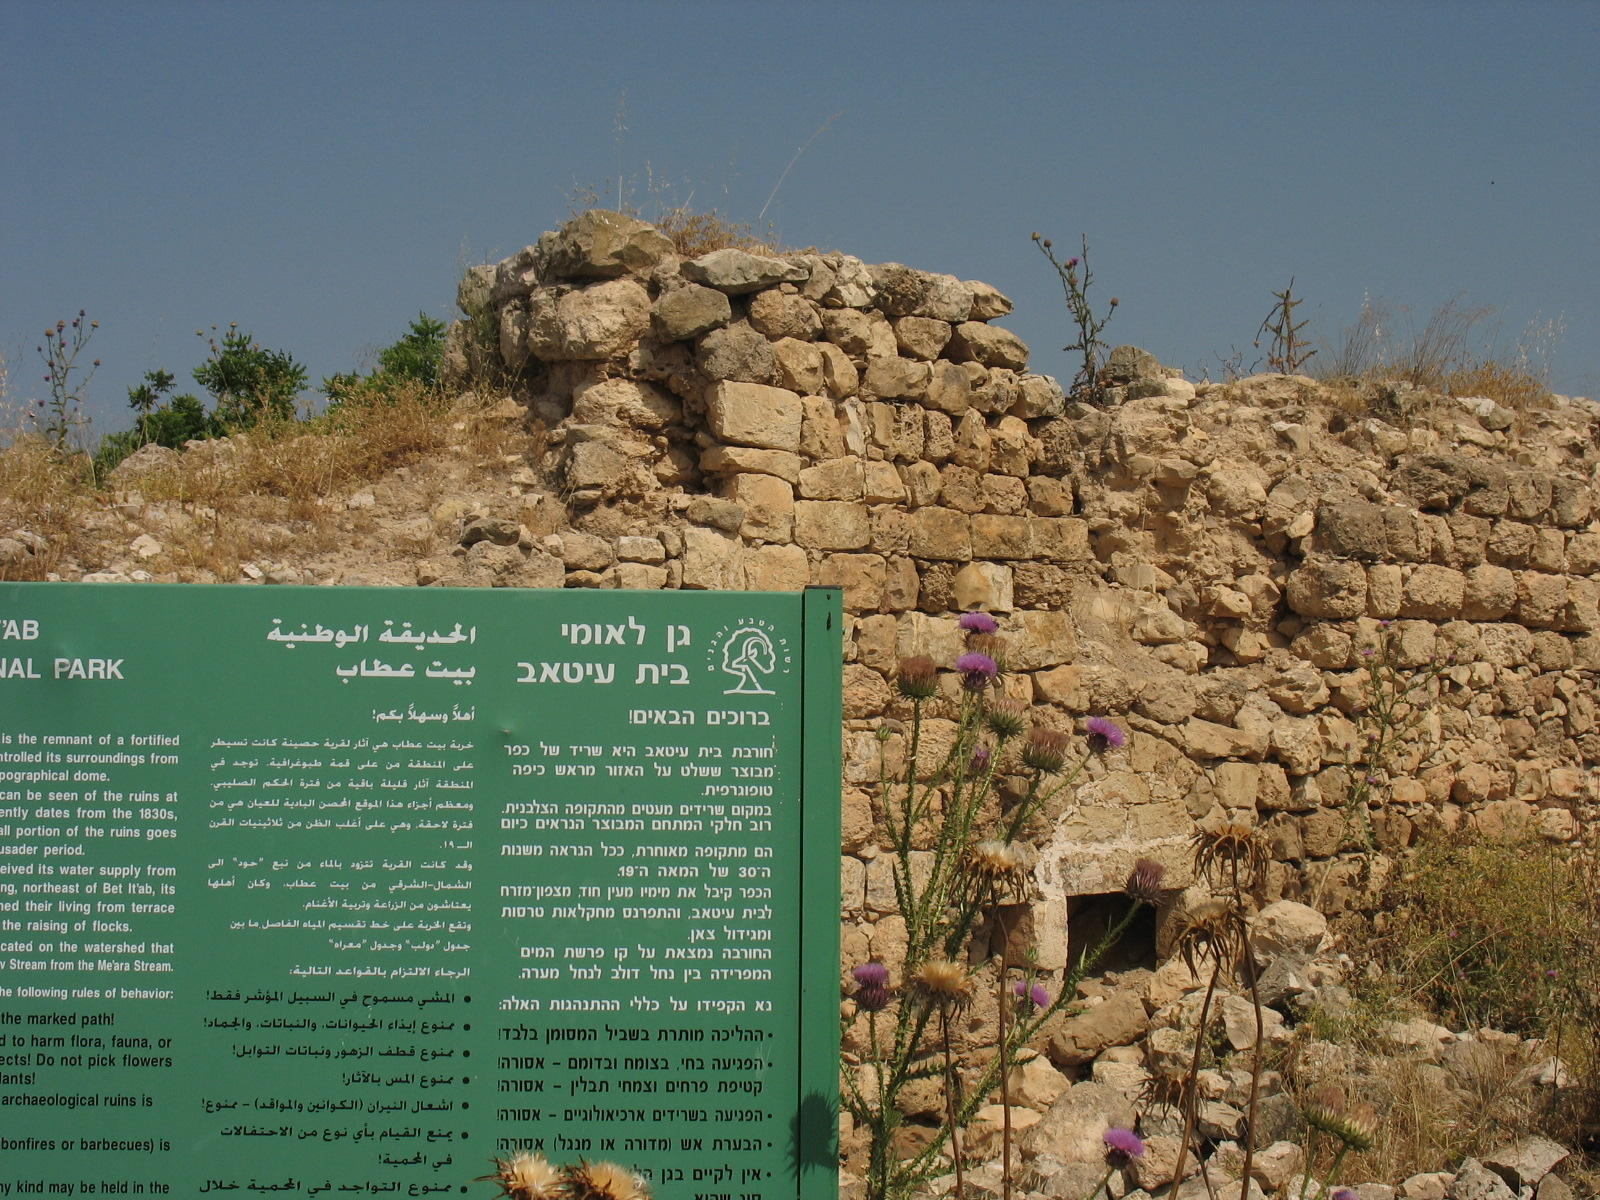 Bayt 'Itab - بيت عطاب : The destroyed Palestinian village now serves the Israeli public as a park.